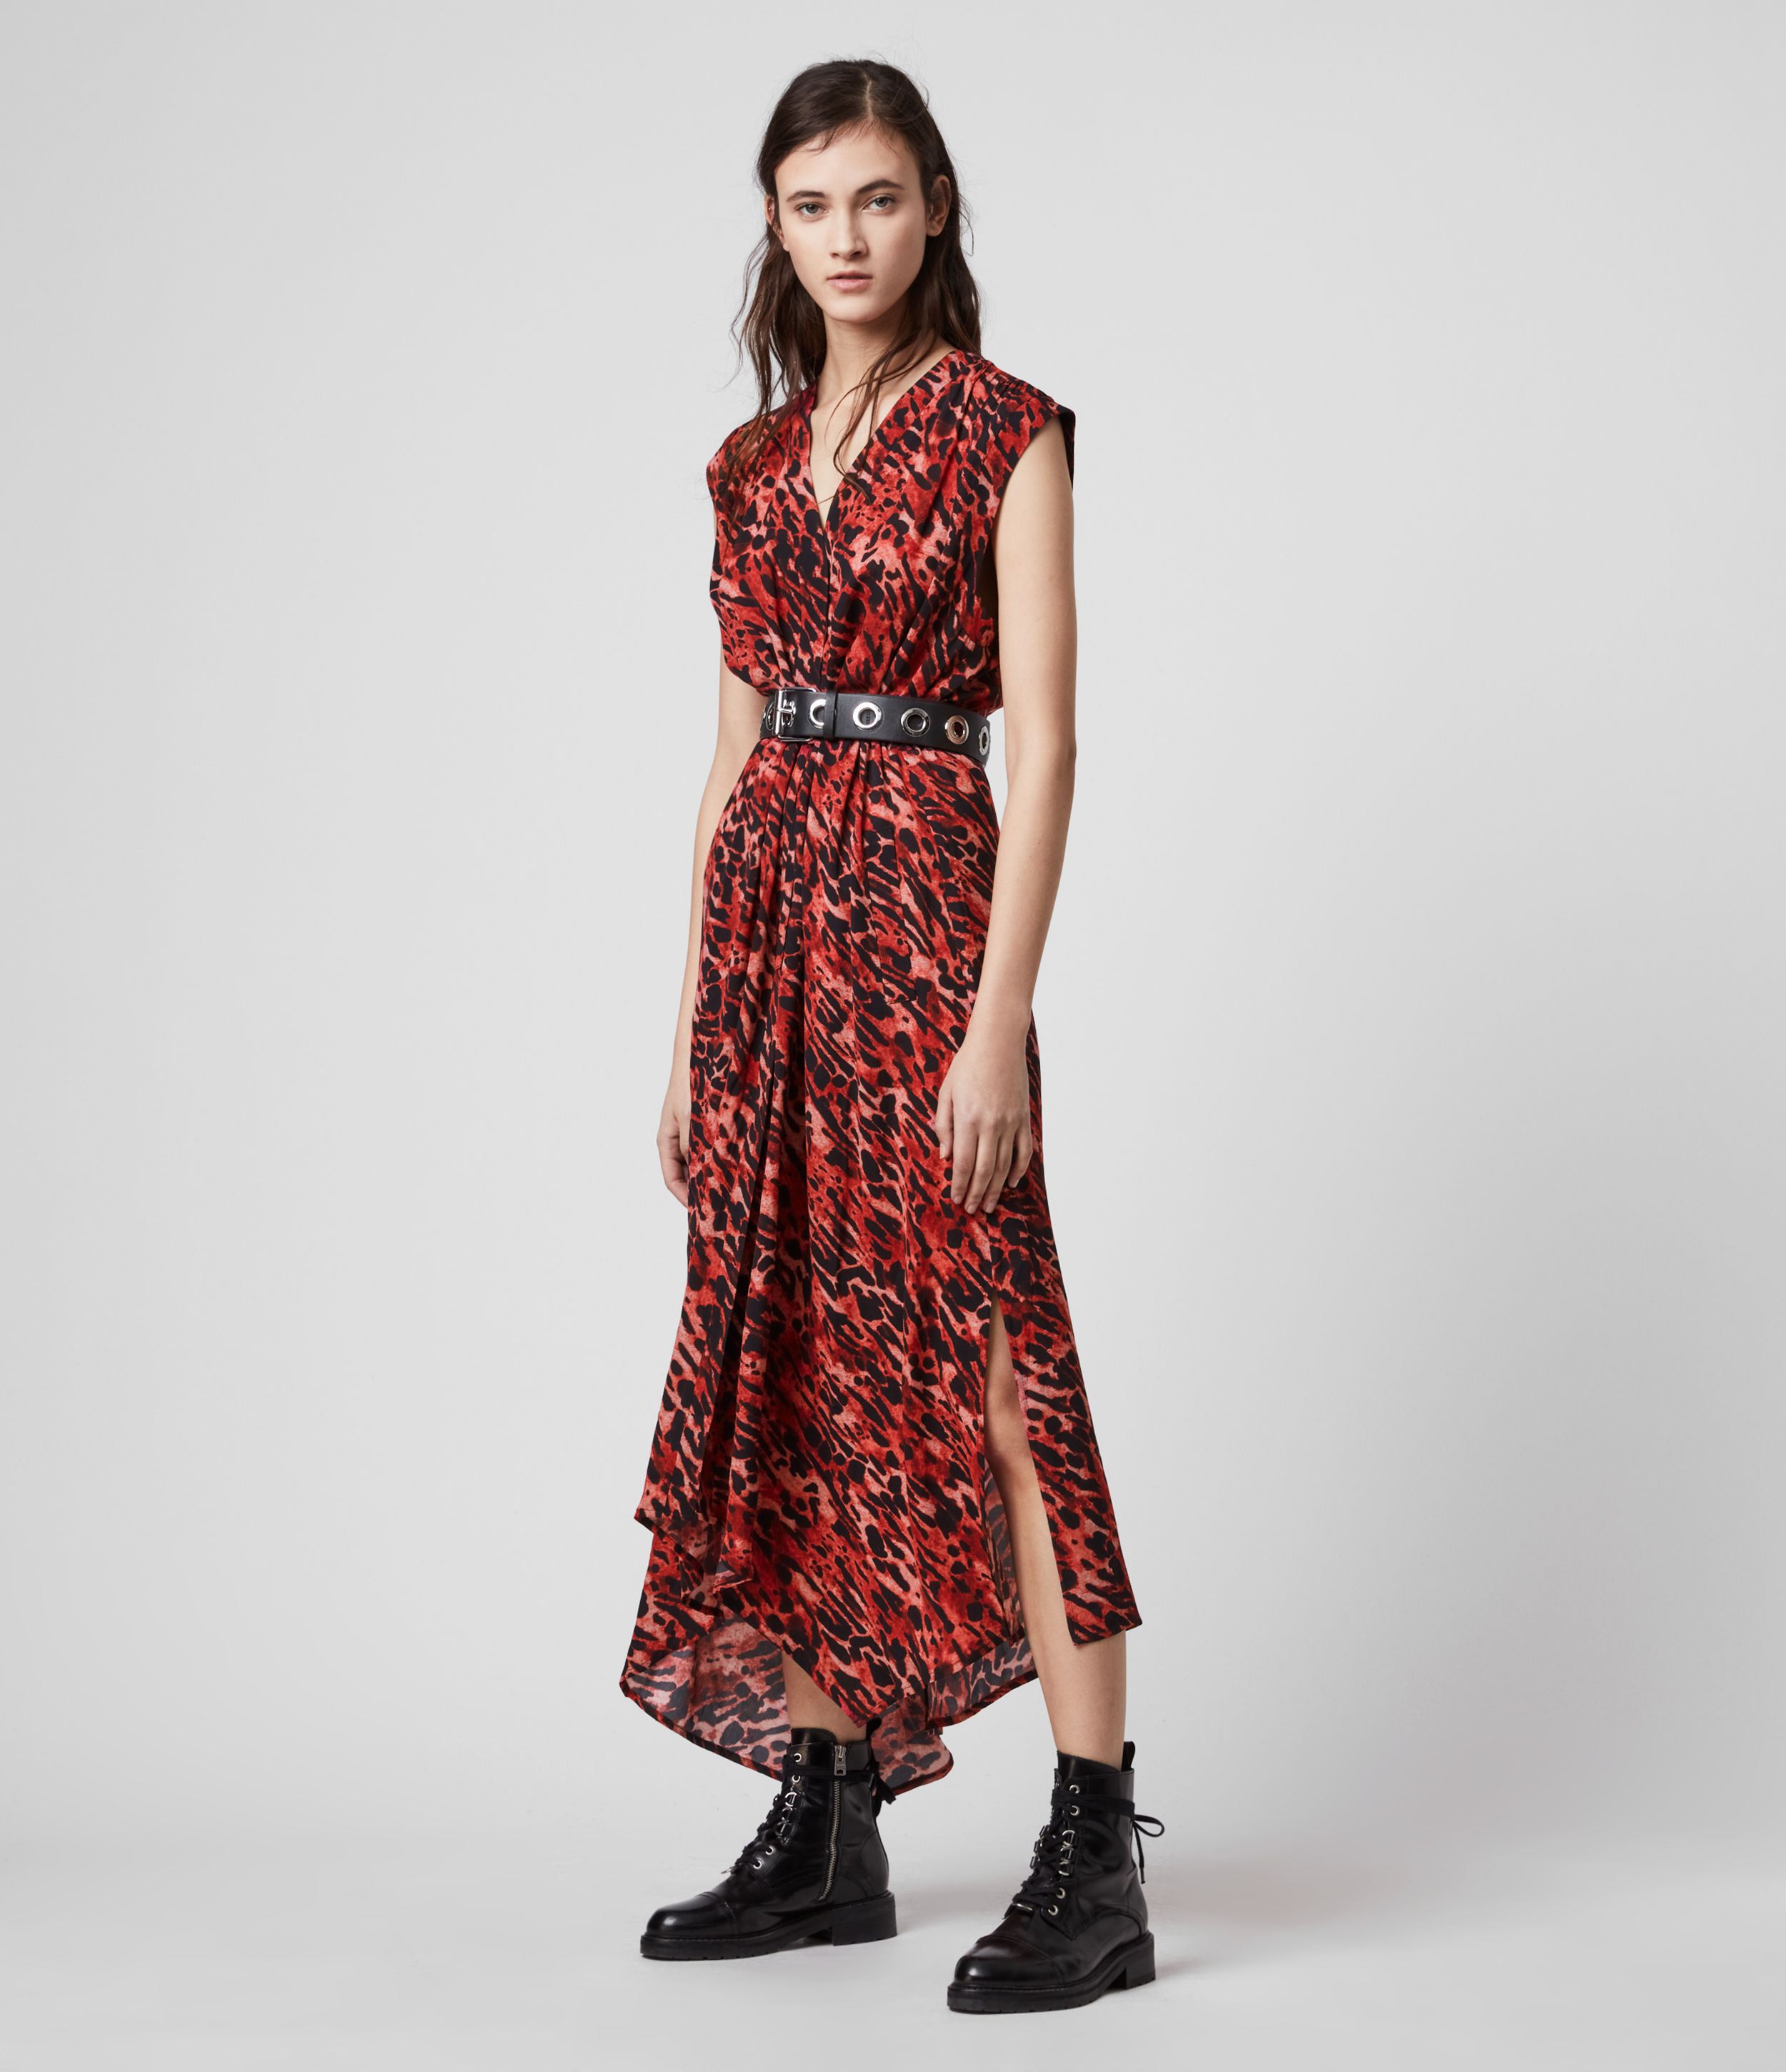 AllSaints Womens Tate Ambient Dress, Red, Size: XS